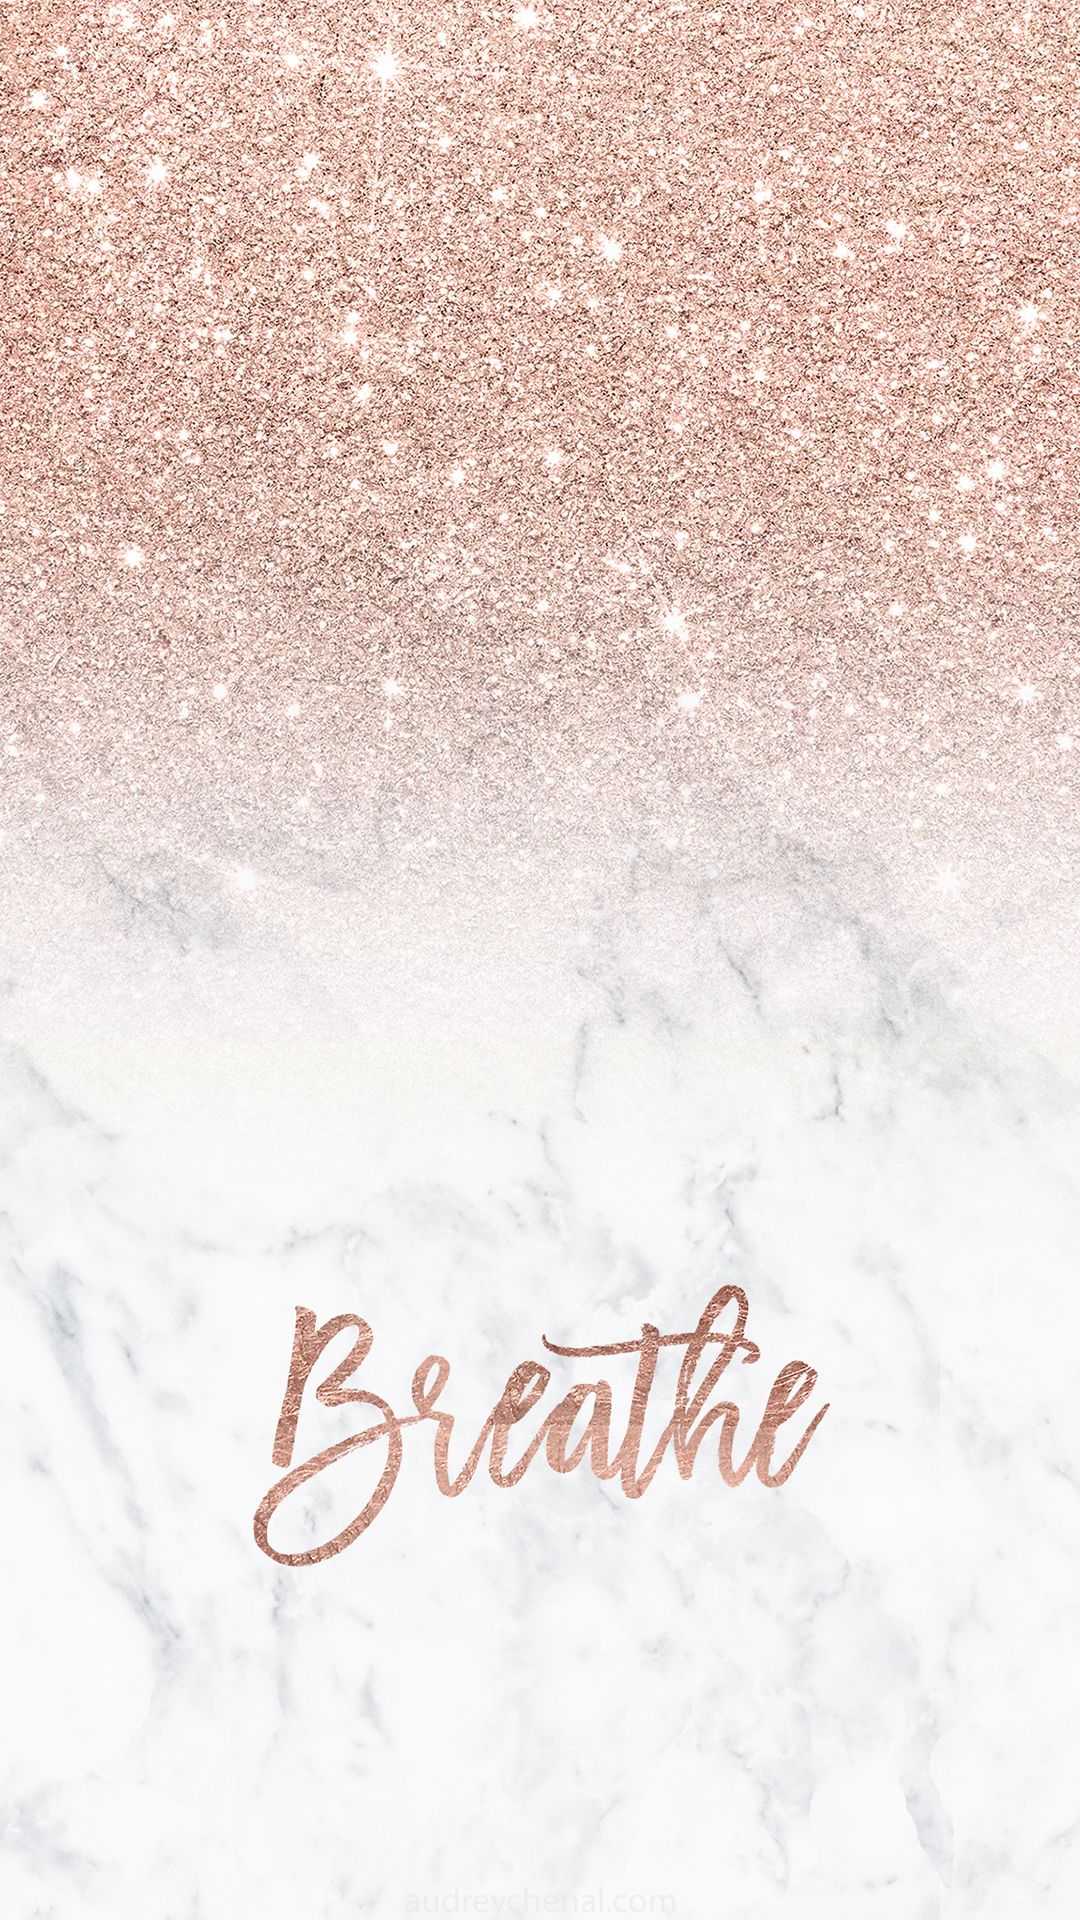 Rose Gold Glitter Ombre White Marble Breathe Typography Iphone Wallpaper Backgr Rose Gold Wallpaper Iphone Gold Wallpaper Iphone Rose Gold Wallpaper